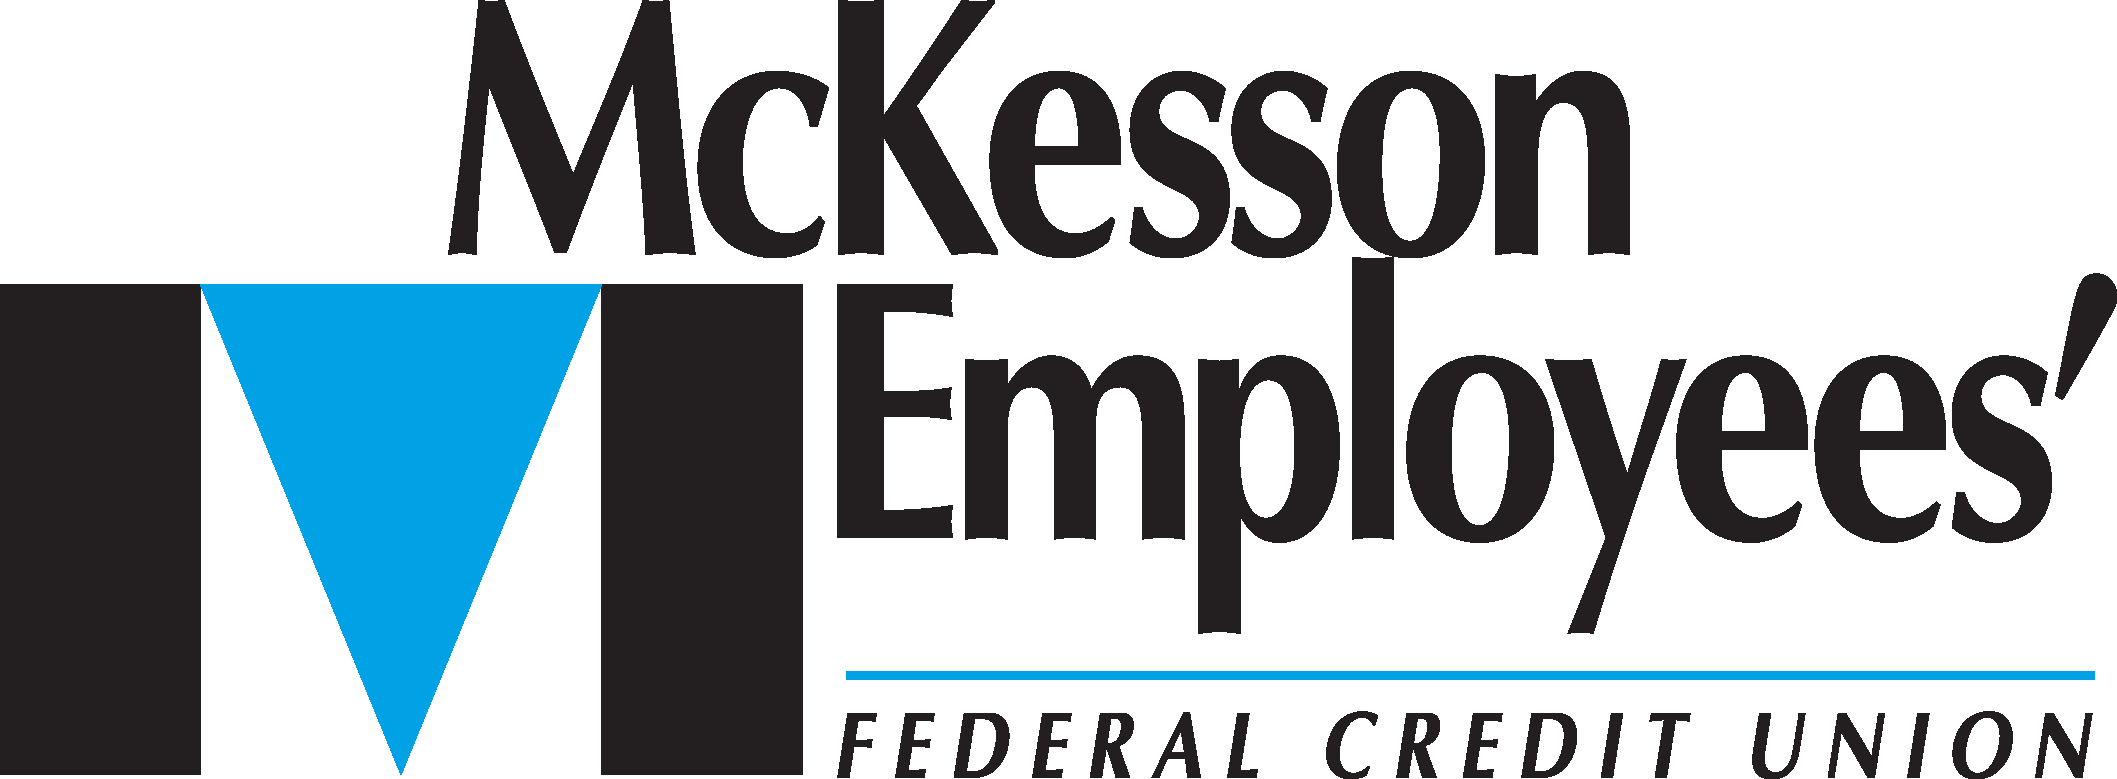 McKesson Employees FCU